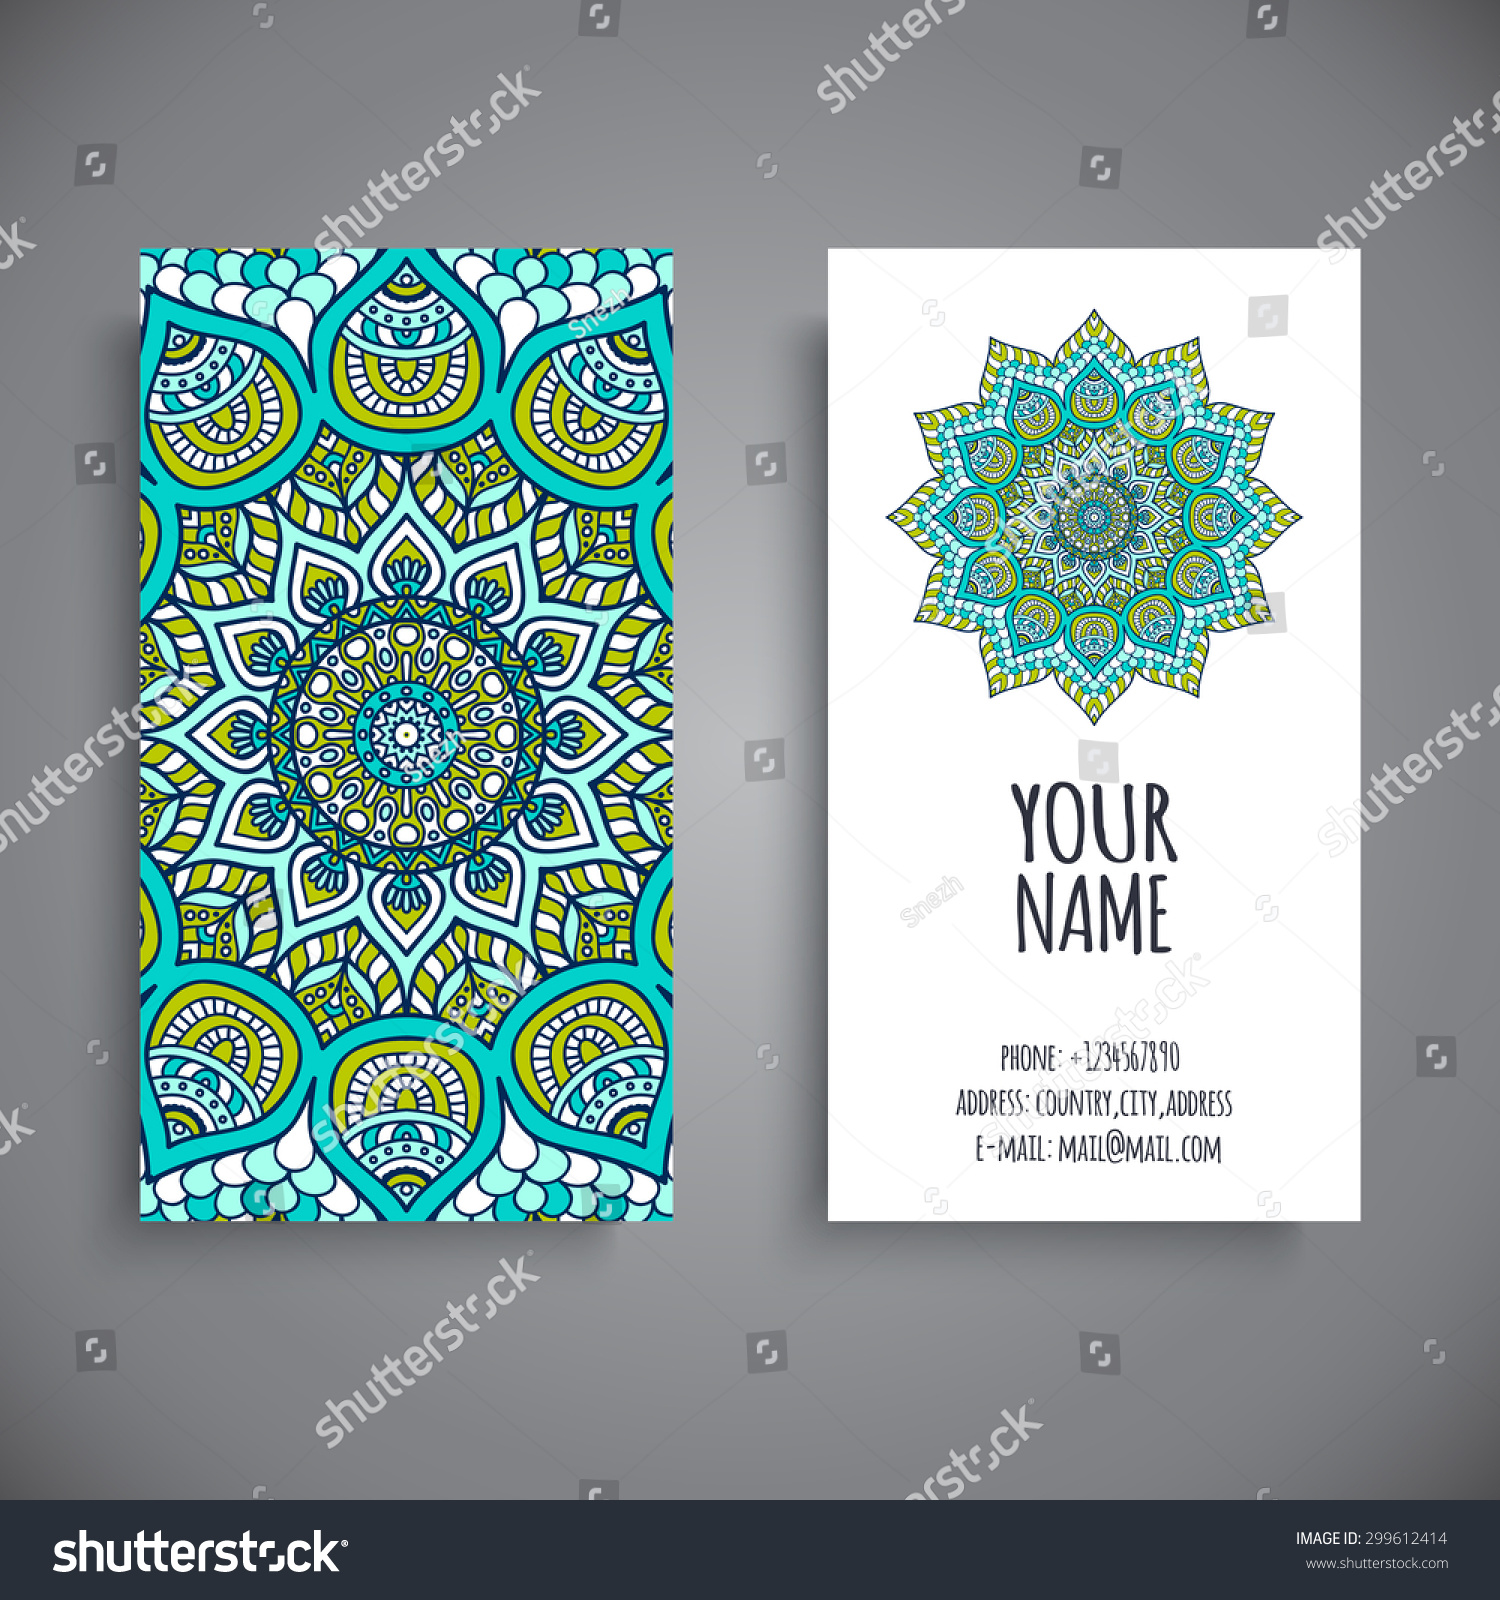 Business Card Vintage decorative elements Ornamental floral business cards oriental pattern vector illustration Islam Arabic Indian turkish pakistan chinese ottoman motifs